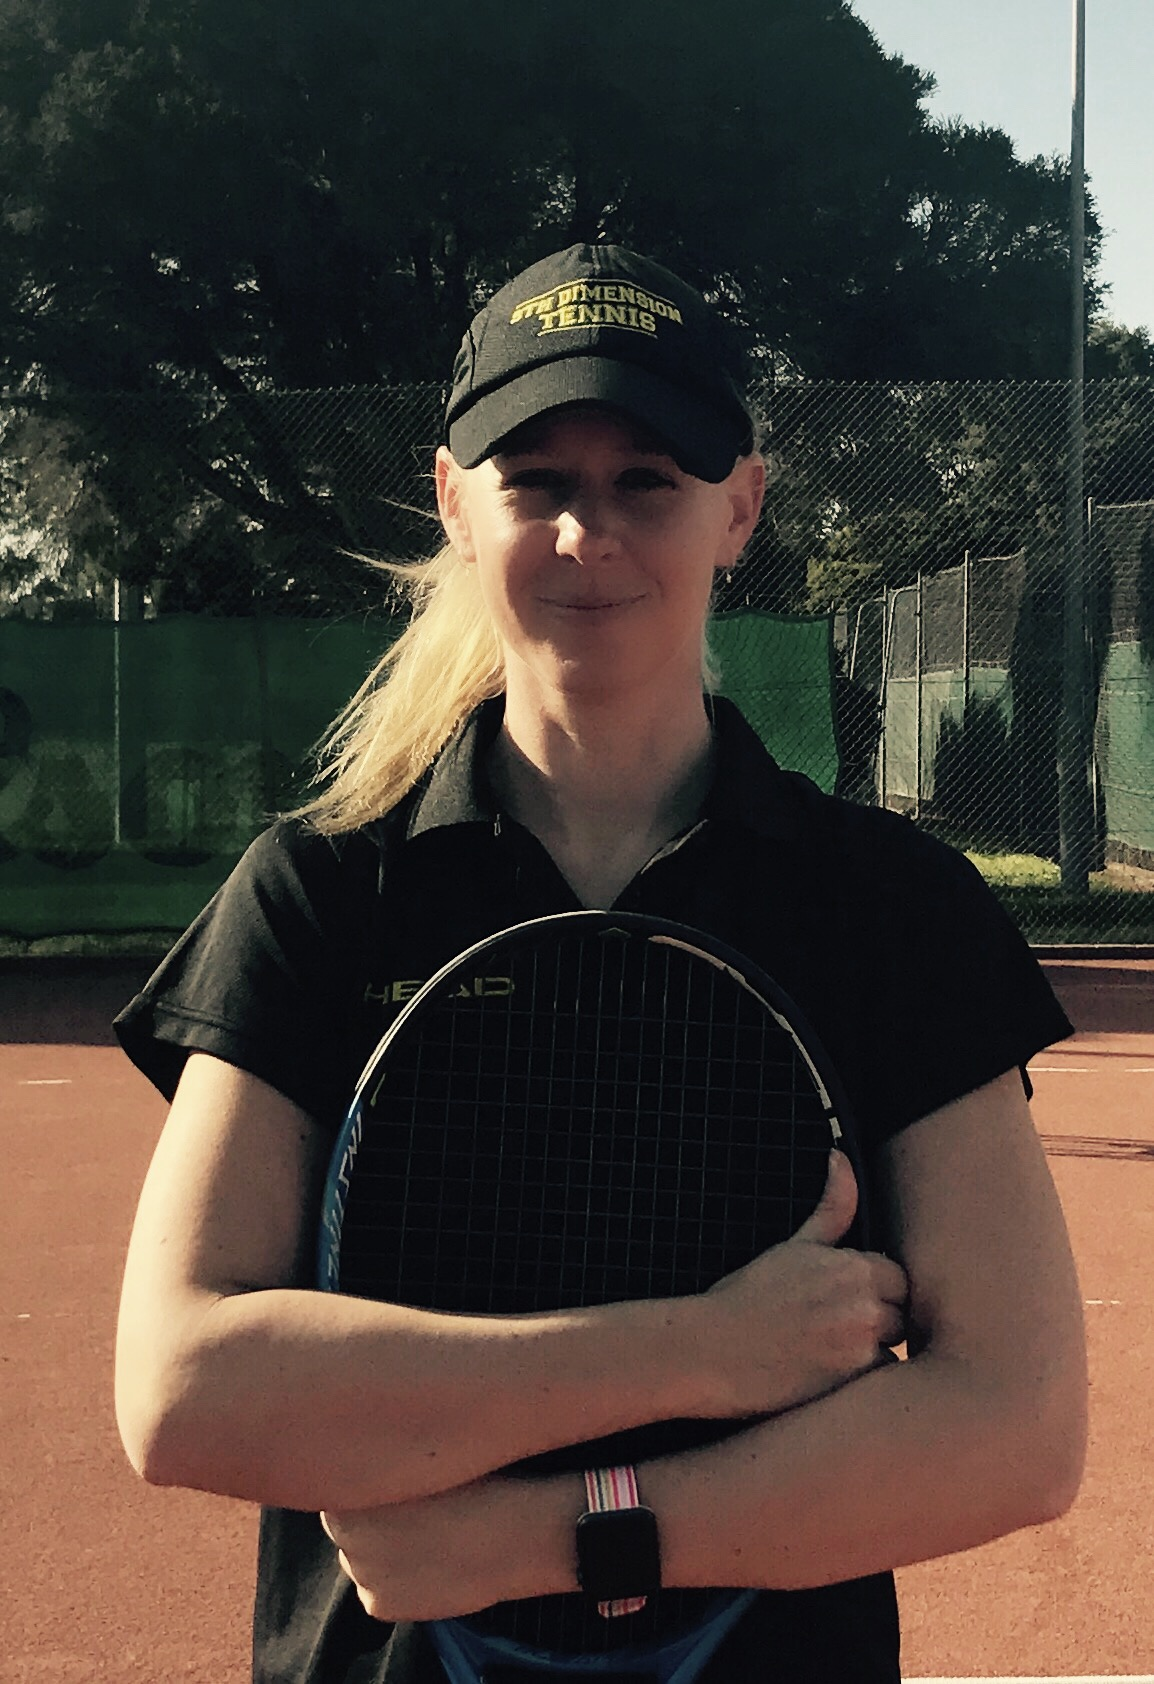 Jenni Blundell -Head Coach - Qualifications/ CertificationsTennis Australia Club Professional CoachTennis Australia Women's Coach Scholarship recipient 2017Level 2 First AidWorking with Children CheckAs A Coach:Coach Albert Park TC 2007Head Coach Legend Park TC (2008 to present)Senior Coach Mt.Waverley TC 2010 to 2017Tennis In Schools Coach (ANZ Hot Shots) 2008 to presentANZ Hot Shots Head Coach Internal Club Competition ProgramHead Coach private/ semi-private lessonsAs a PlayerFormer Top 10 ranked Victorian State PlayerCompeted in numerous National Titles as a Junior